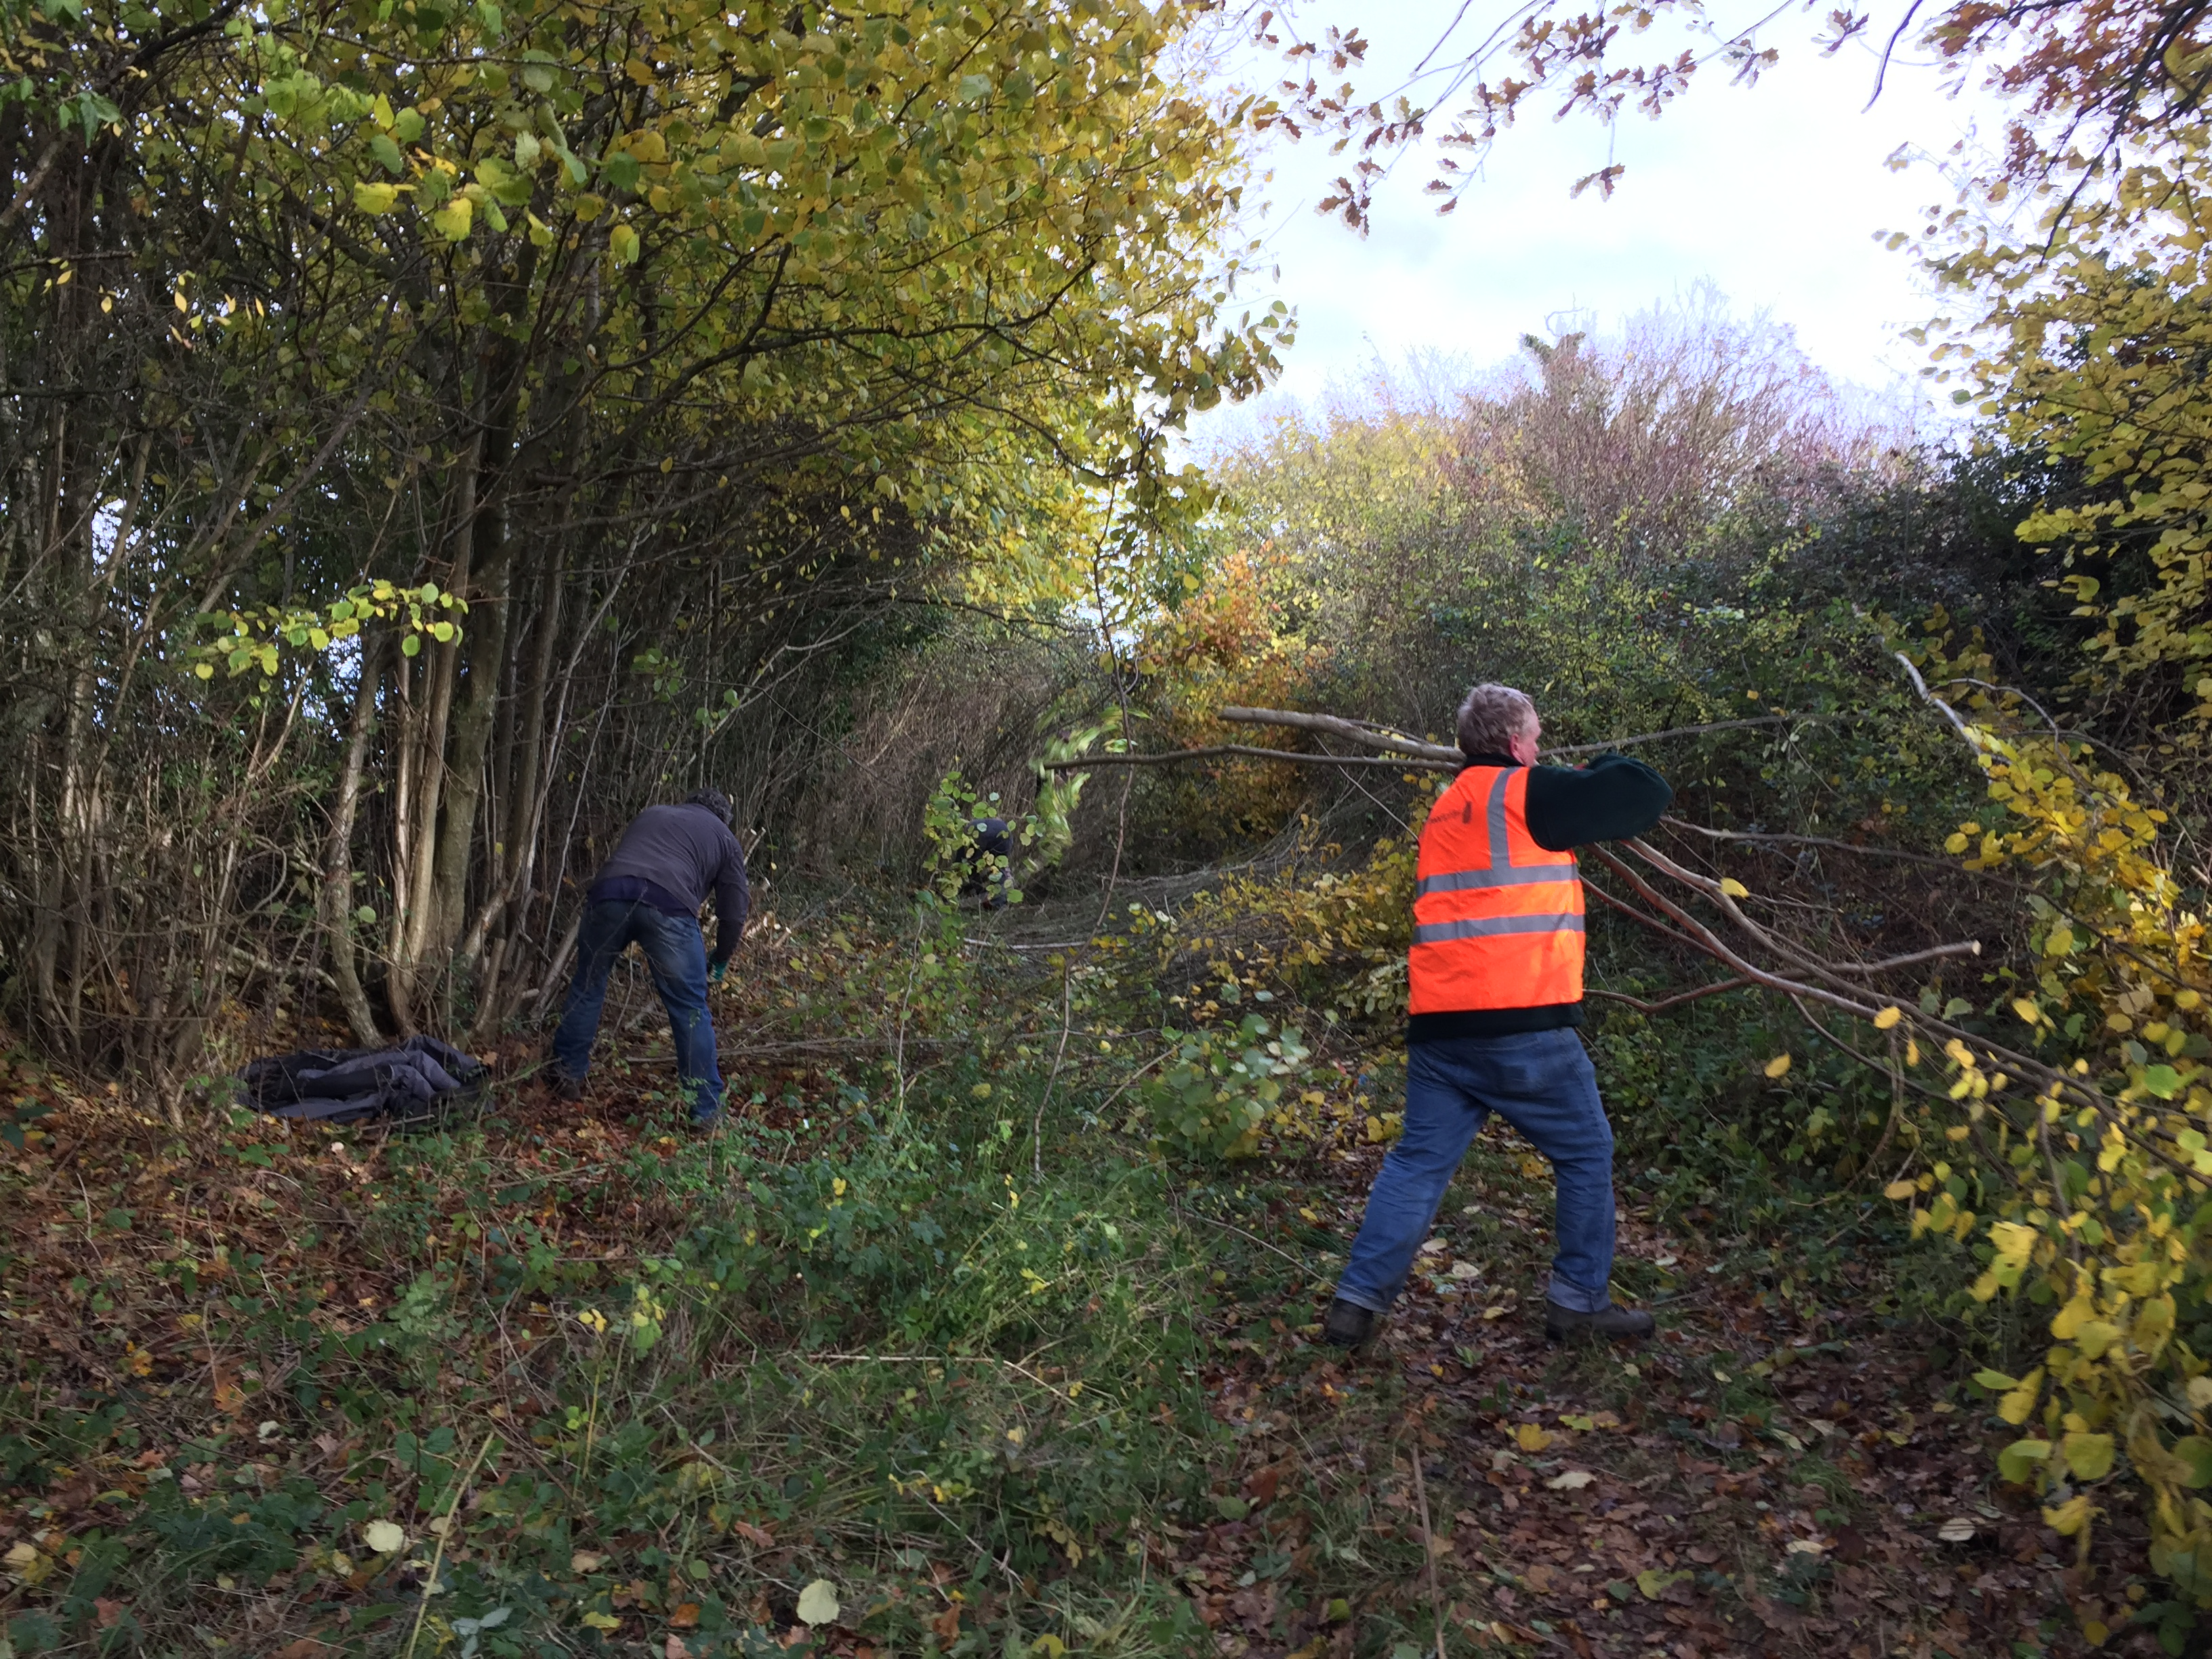 Shalbourne Clearance with 2 members of Wilts TRF